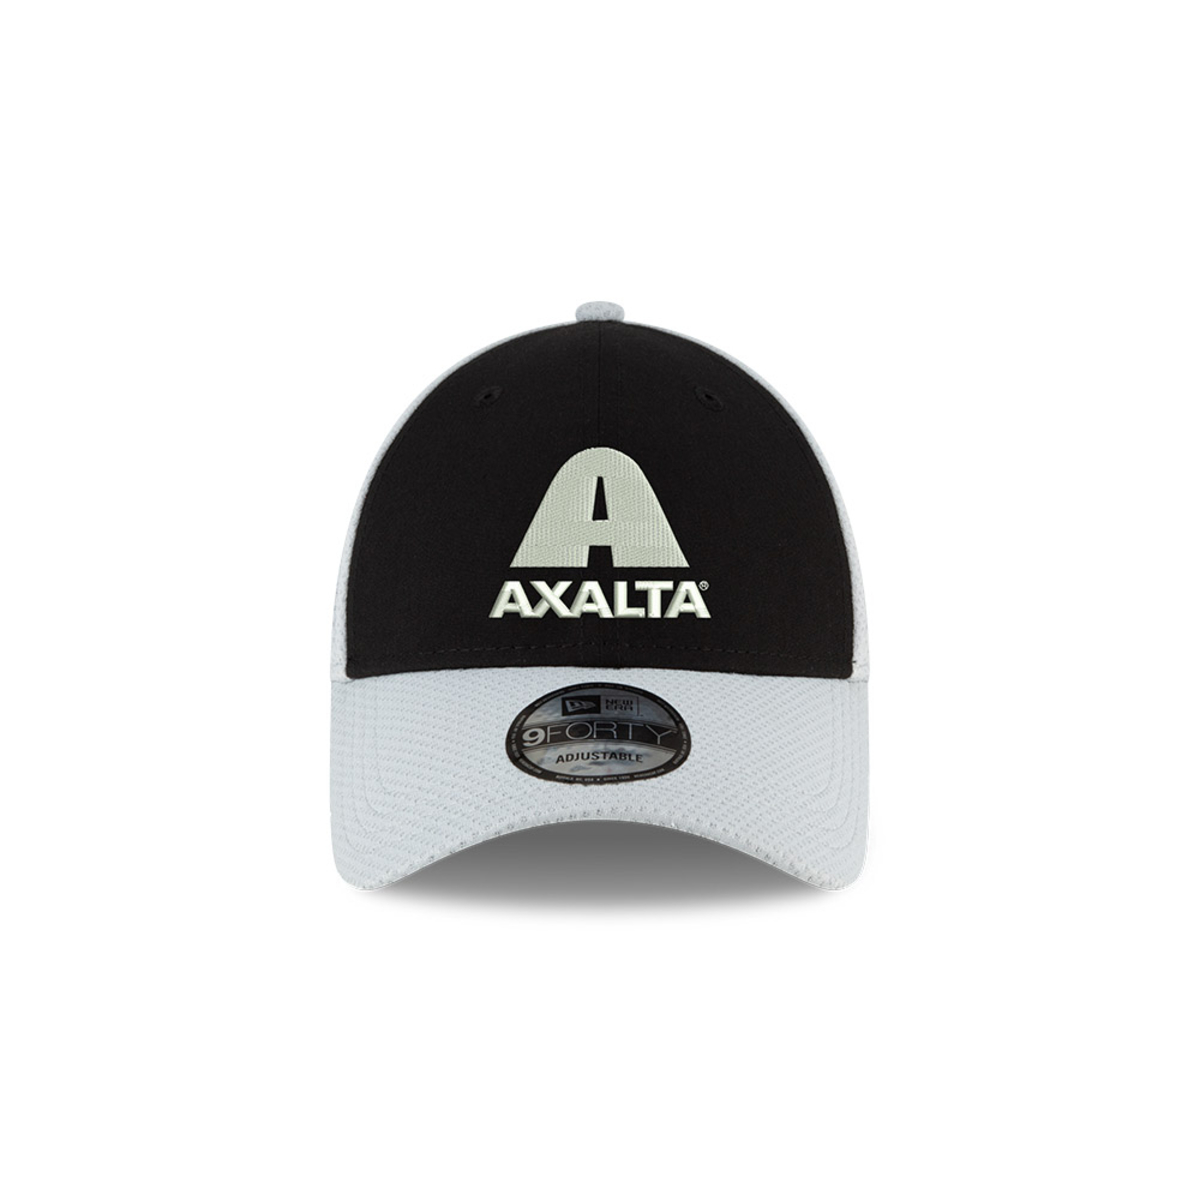 BOWMAN 2020 PLAYOFFS AXALTA NASCAR CUP HAT